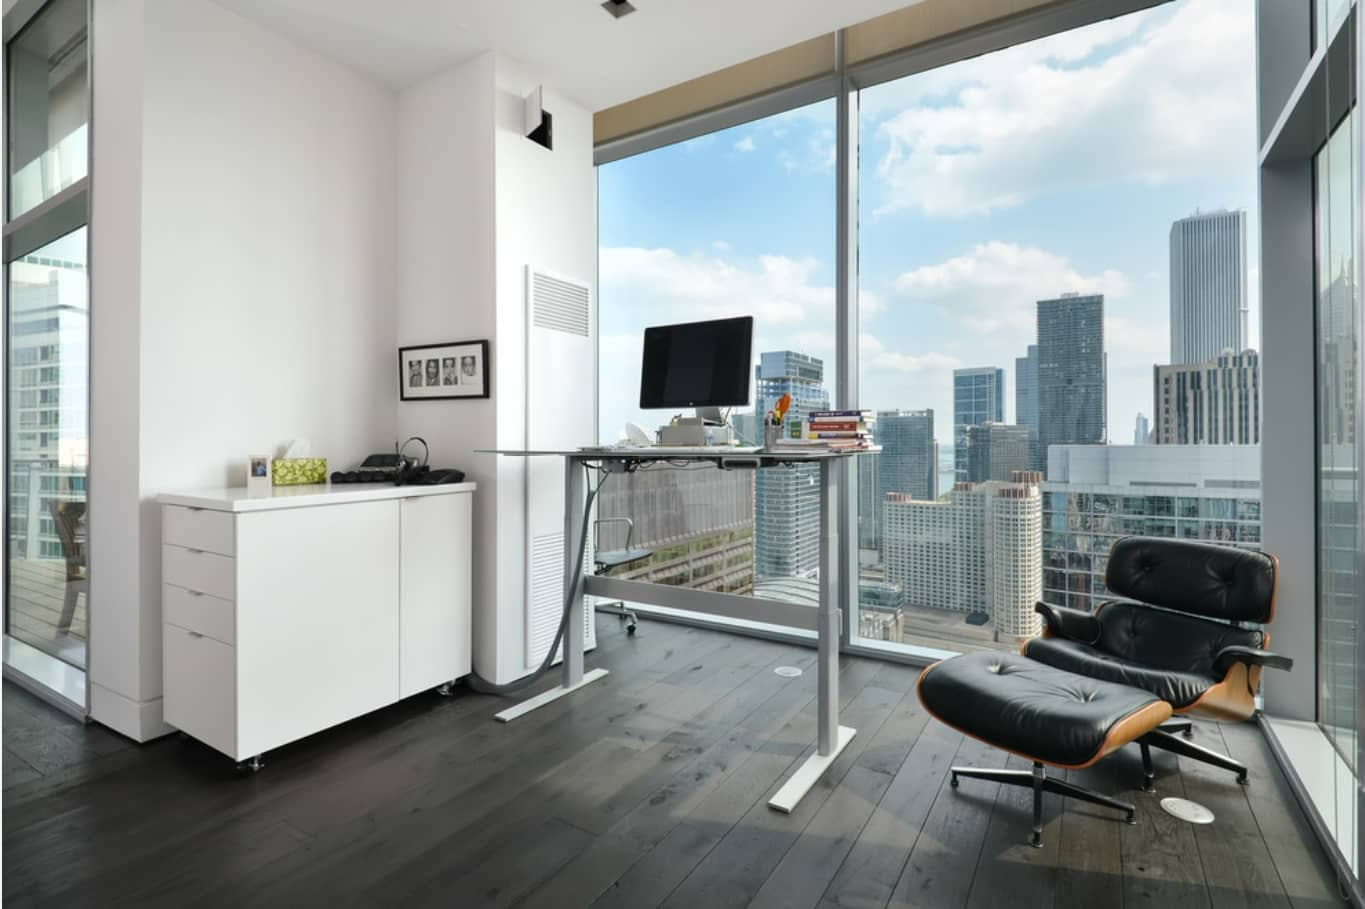 Adjustable Desk to Make Your Home Office more Universal. Modern apartment with white walls and panoramic window